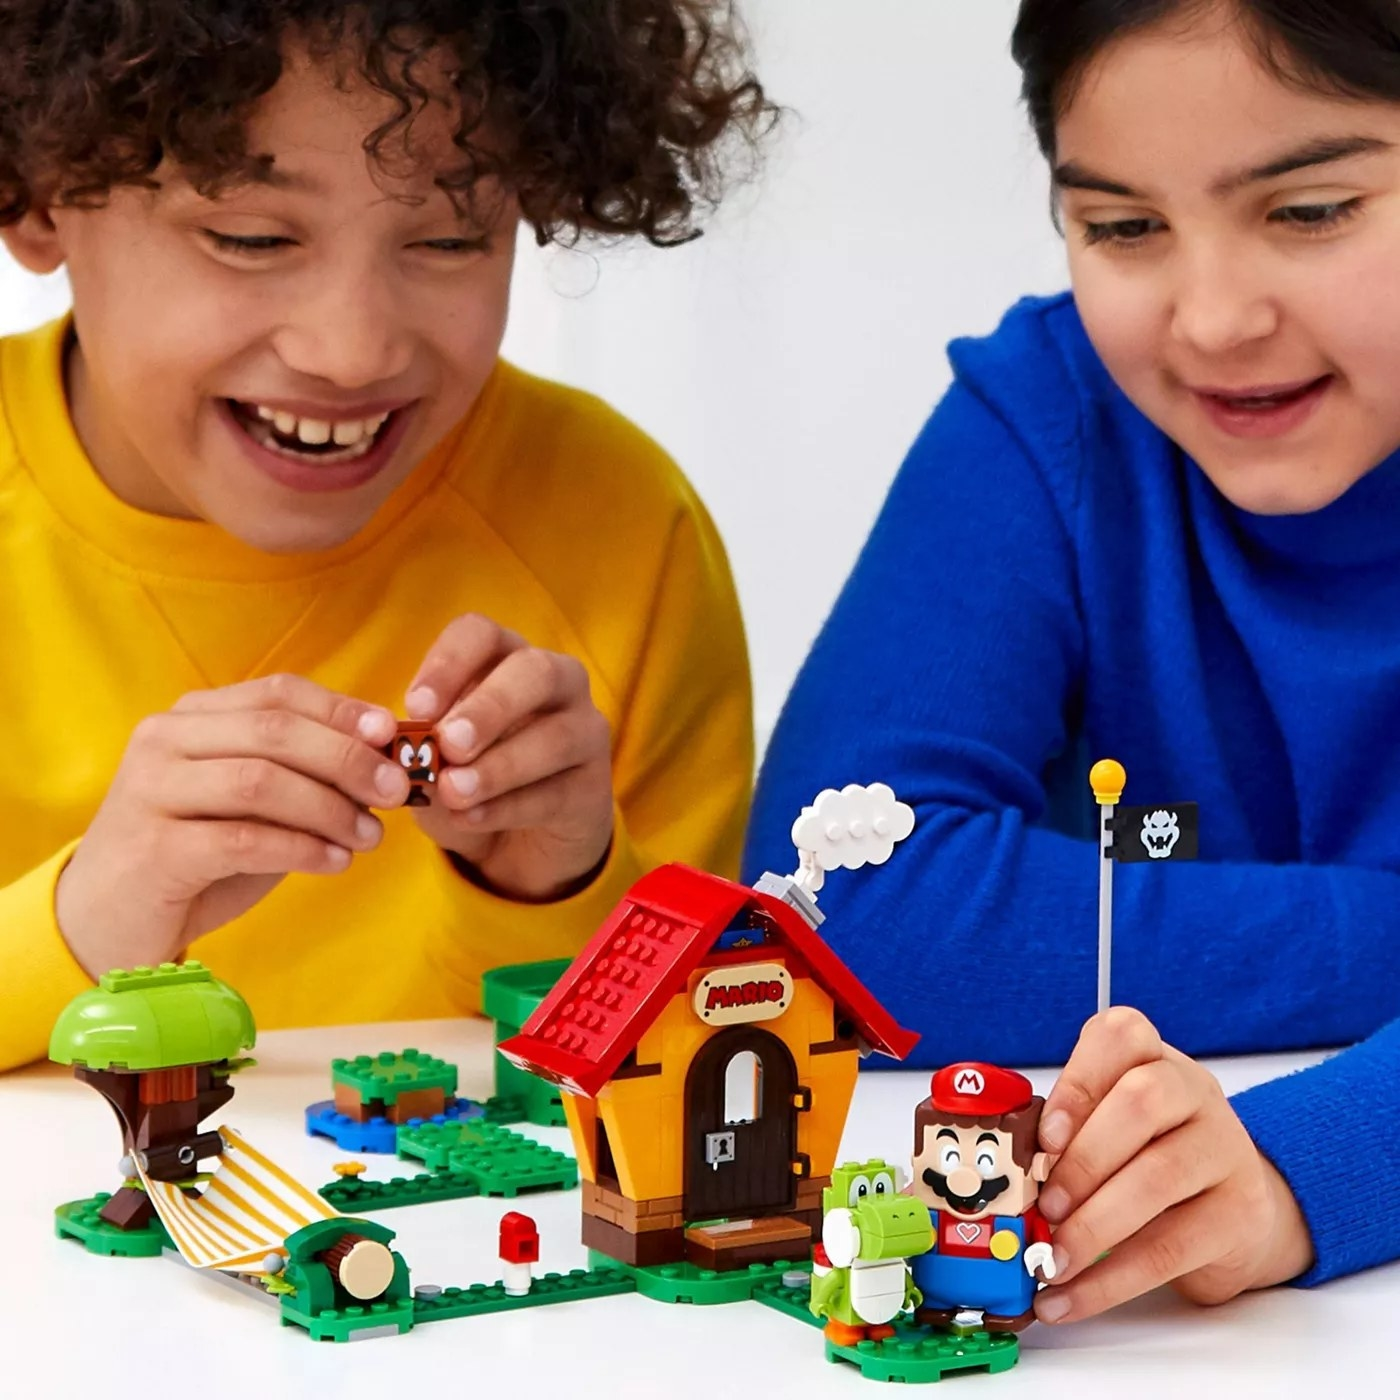 Children playing with a Super Mario LEGO set